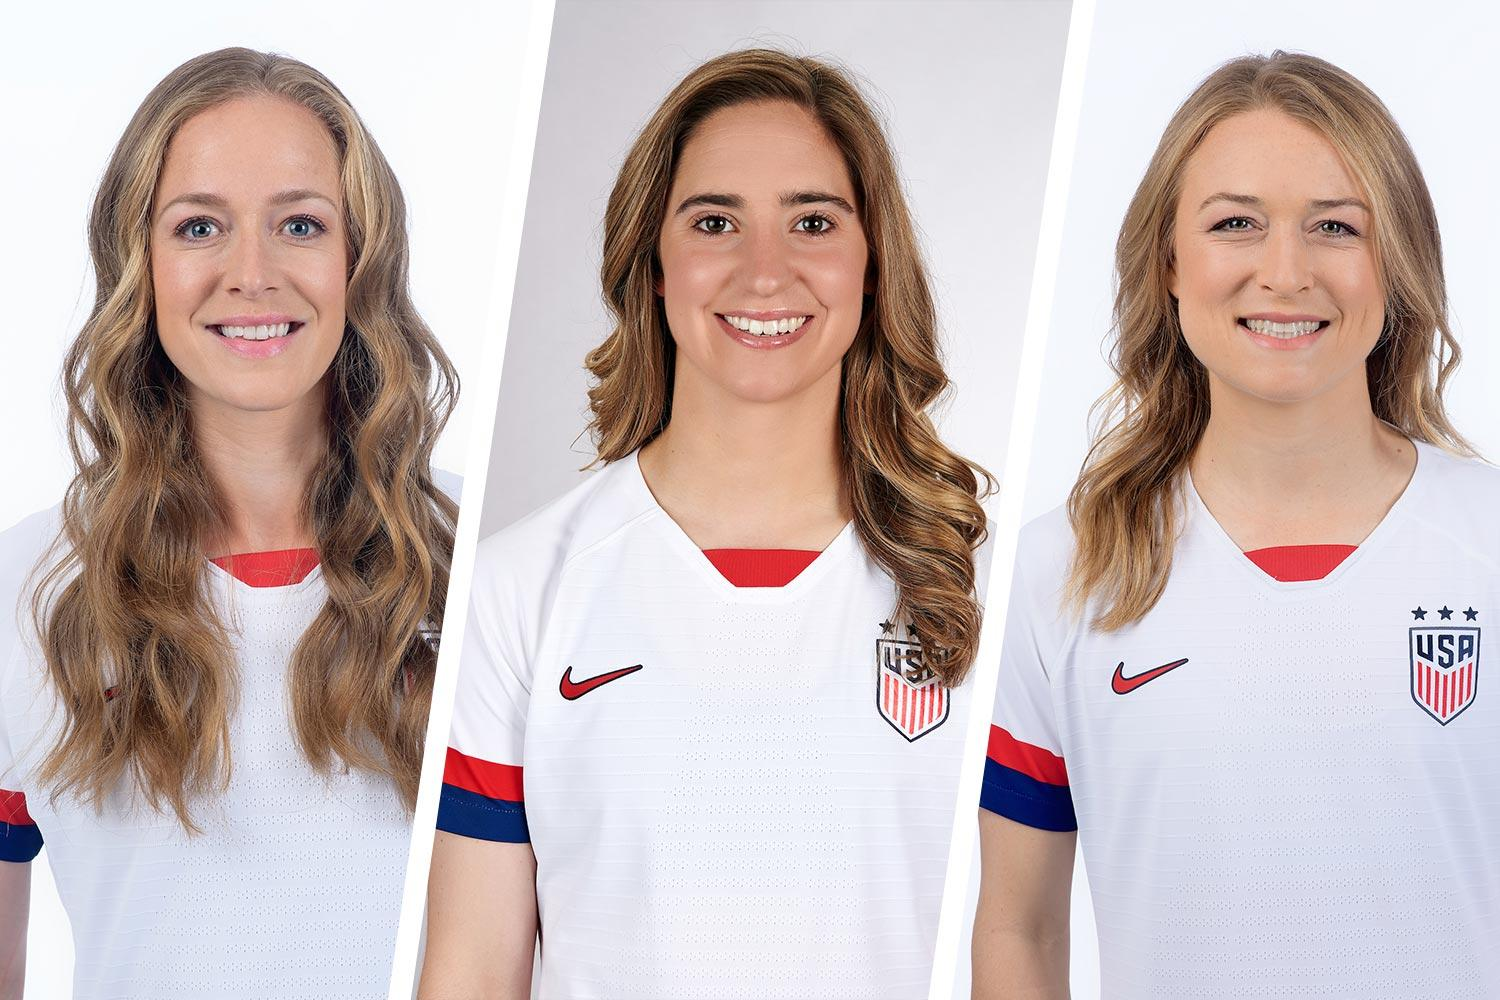 Former UVA women's soccer stars Becky Sauerbrunn, Morgan Brian and Emily Sonnett were part of the U.S. Women's National Team that won the World Cup on Sunday. (Photos courtesy of U.S. Soccer)